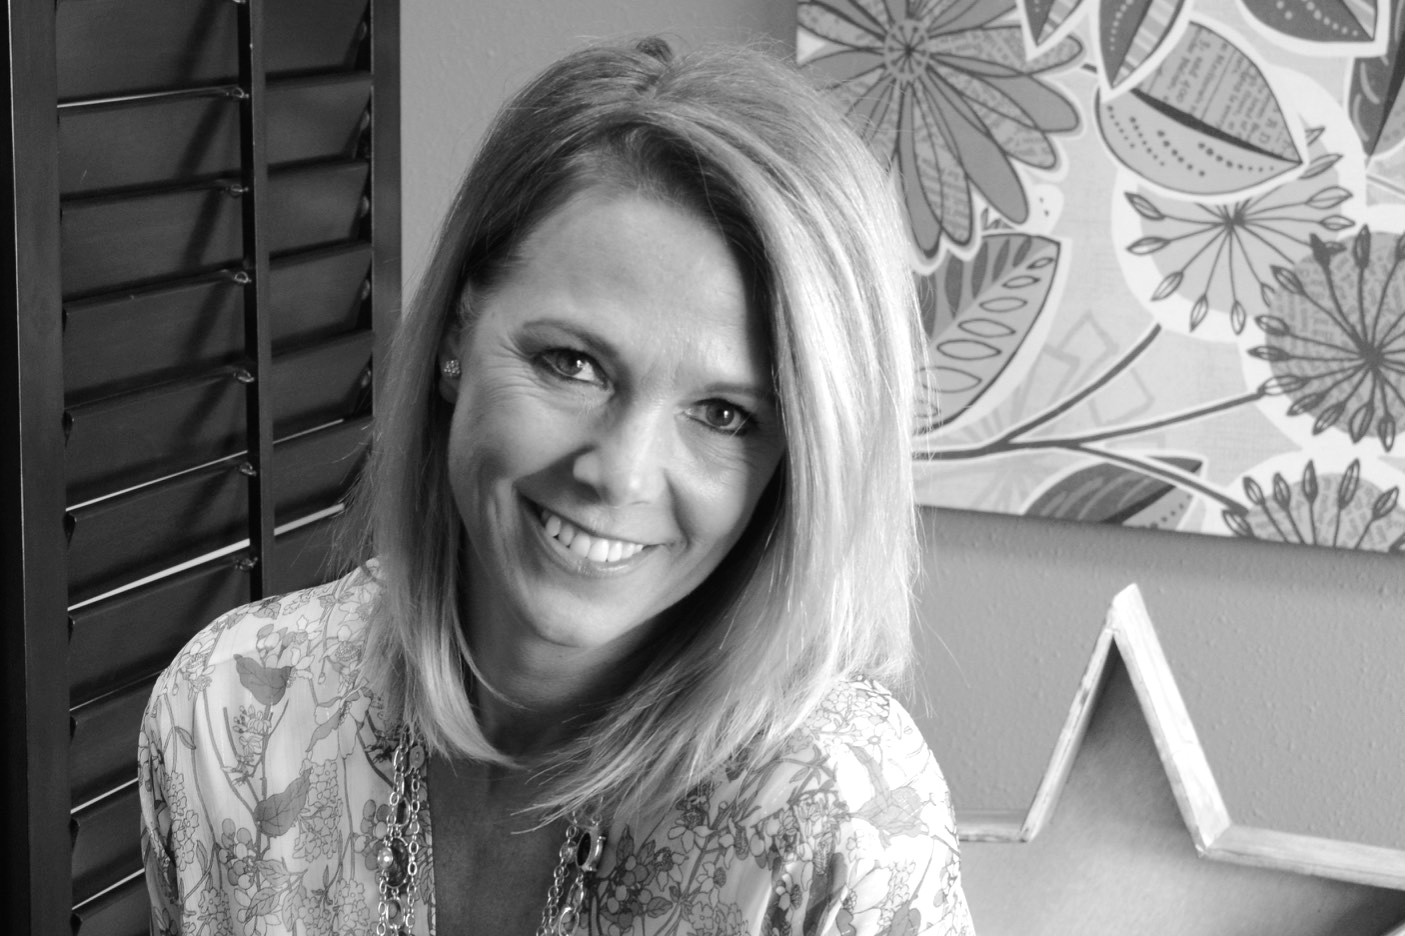 Meet Teri! - Head Stylist and Proprietor, Teri has over 20+ years of beauty experience. Specializing in cut, color and image making, she is an expert in her field, and a consummate professional in all things beauty. Her warm smile coupled with extraordinary people skills keeps her clients happy and returning year after year. Let Teri bring out the beautiful in you!Book an appointment: 320-251-1707 ext# 4 or text: 320-224-2014